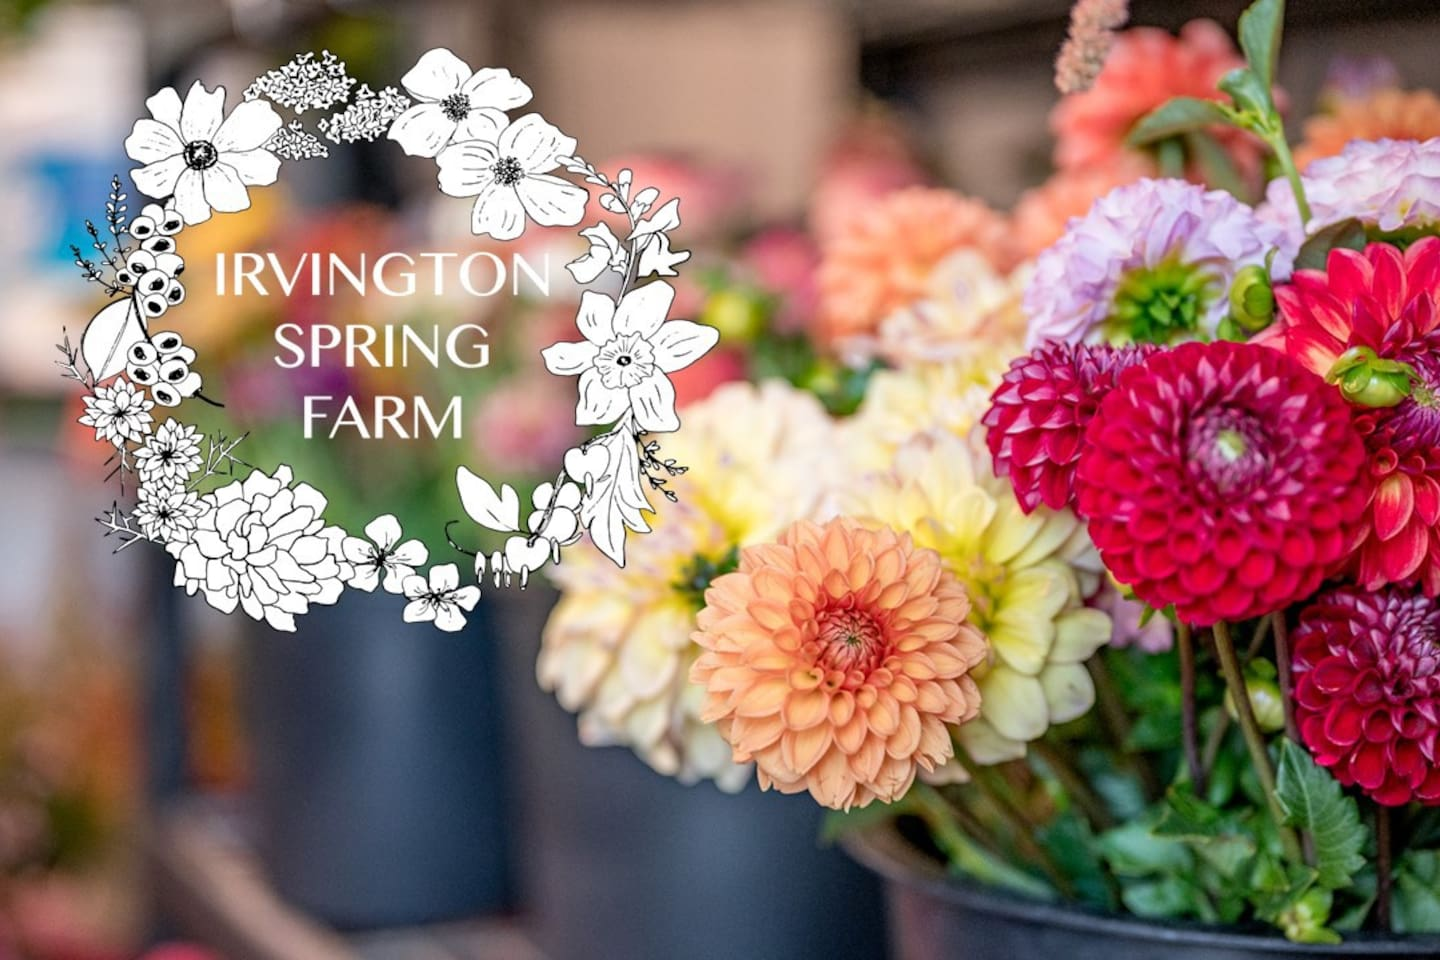 Welcome to the flower farm! Irvington Spring Farm is located in beautiful Lynchburg, VA.